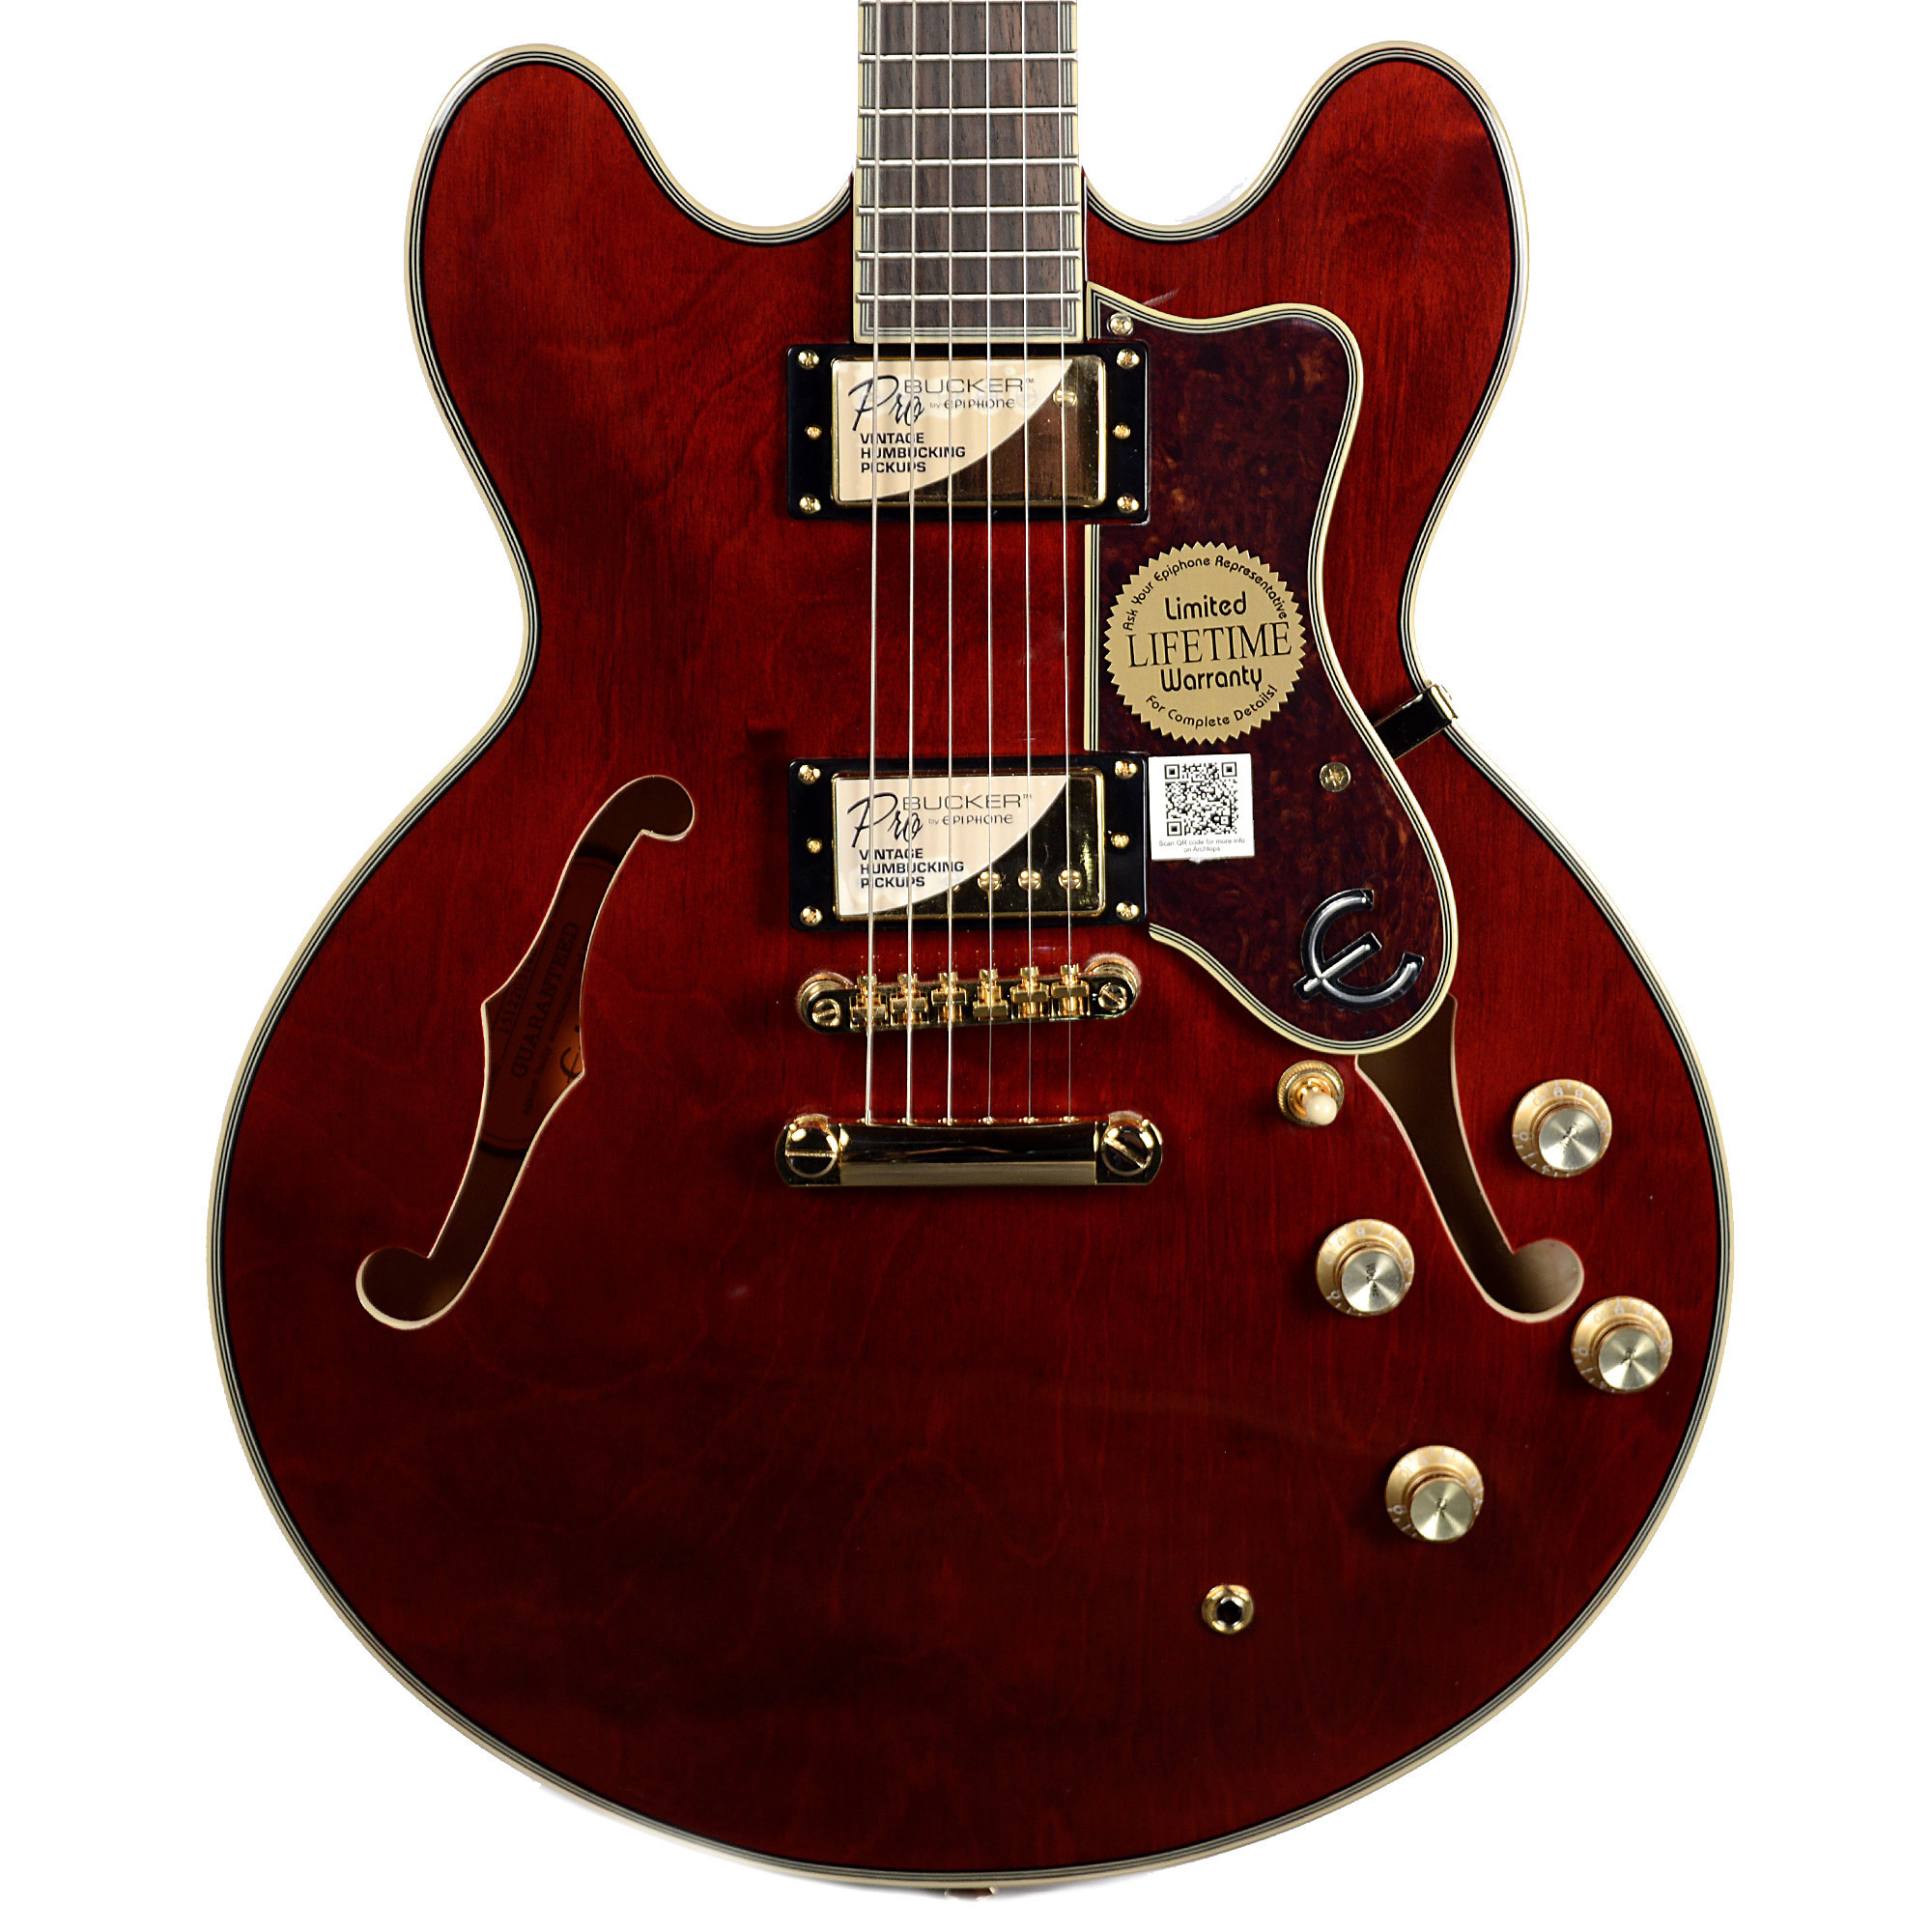 Epiphone Sheraton-II PRO Semi-Hollow Body Electric Guitar (Wine Red) by Epiphone